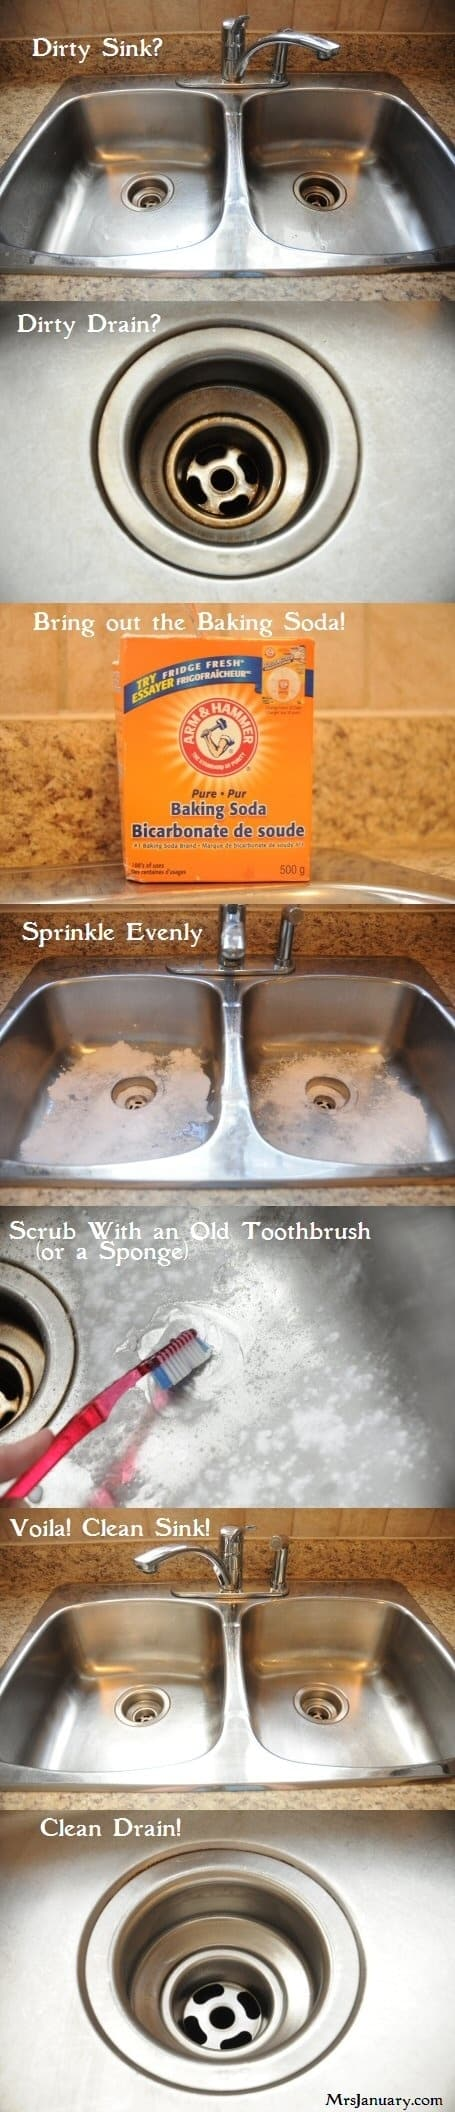 Clean A Stainless Steel Sink With Baking Soda: